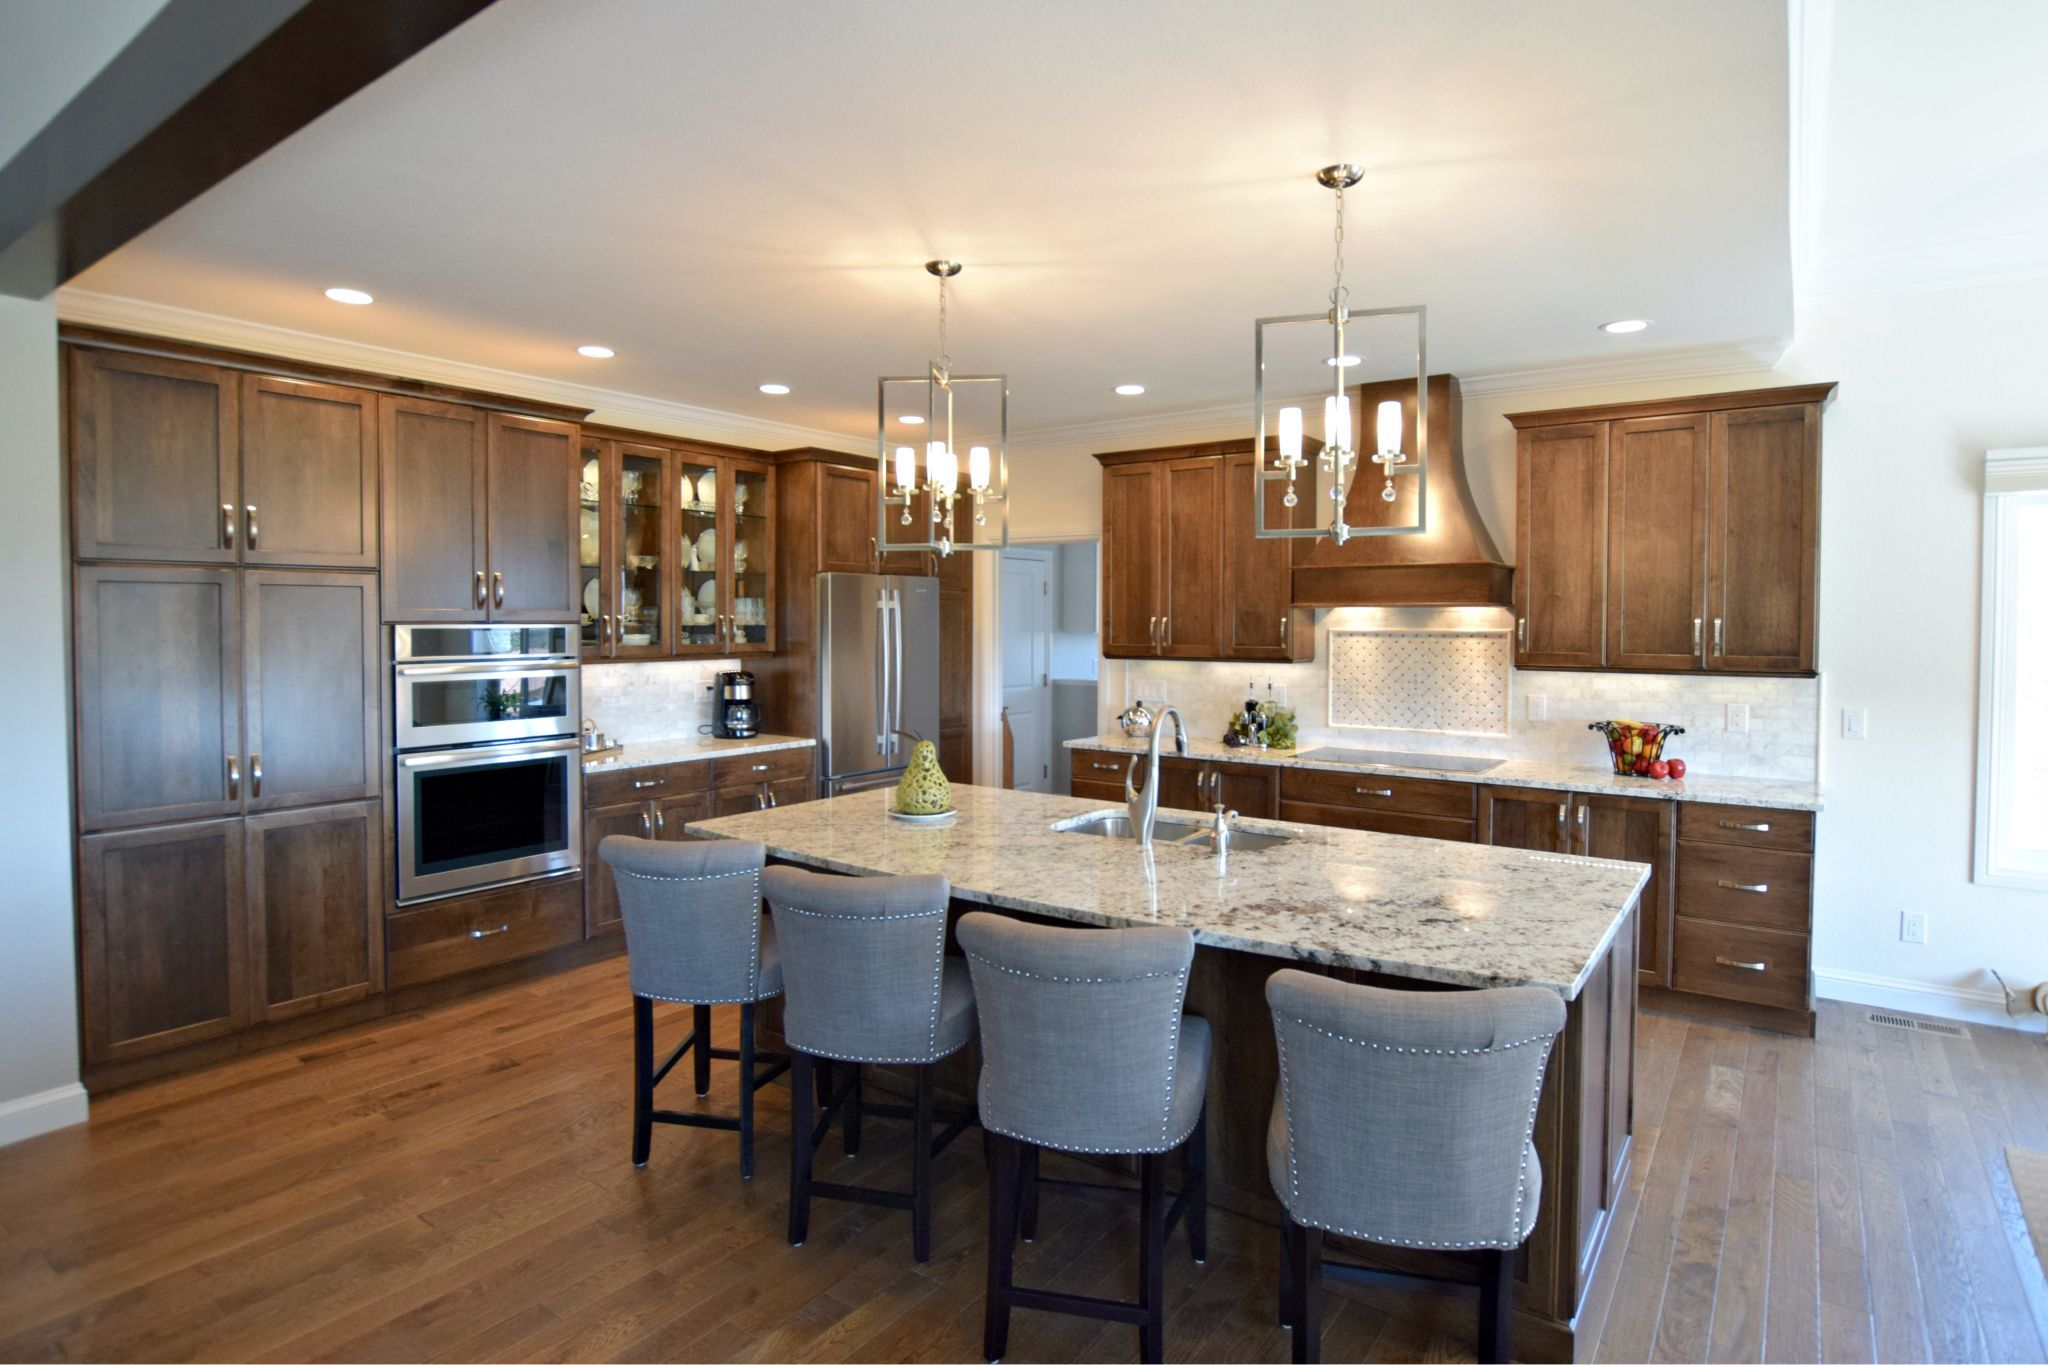 BKC Kitchen and Bath | Mid Continent Cabinetry | Traditional ...